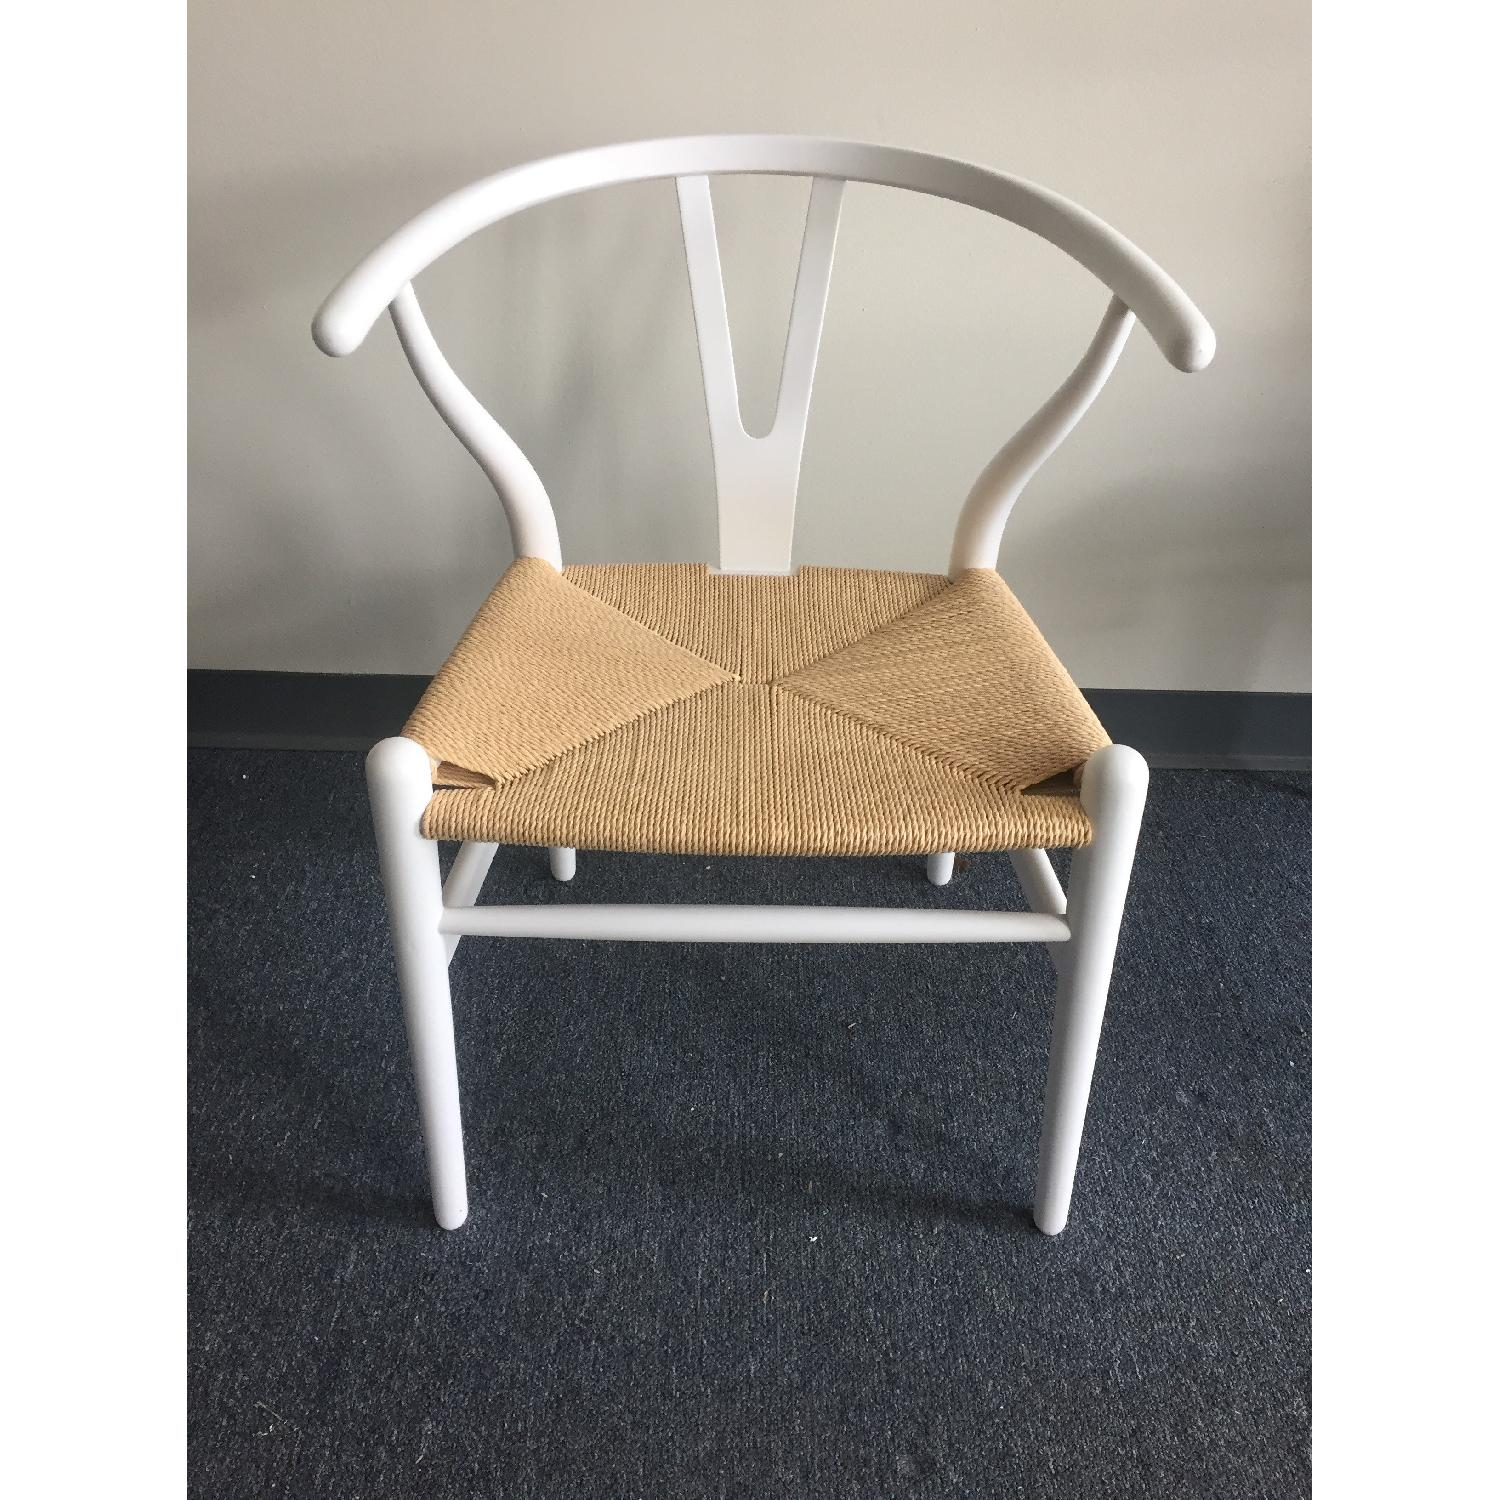 Lazzoni White Dining/Outdoor Chairs - image-2